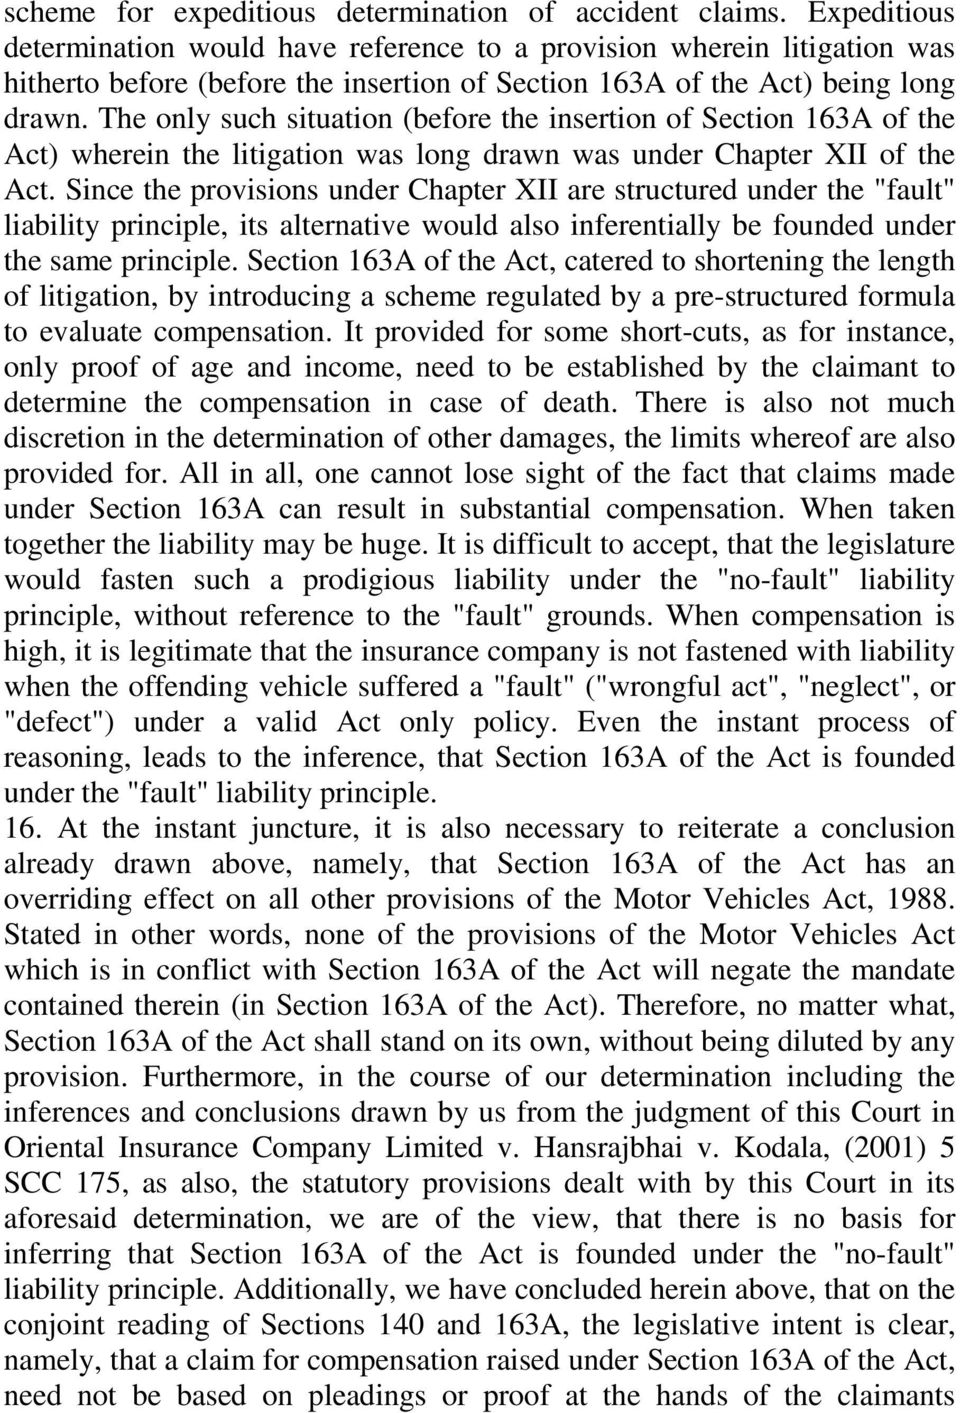 The only such situation (before the insertion of Section 163A of the Act) wherein the litigation was long drawn was under Chapter XII of the Act.